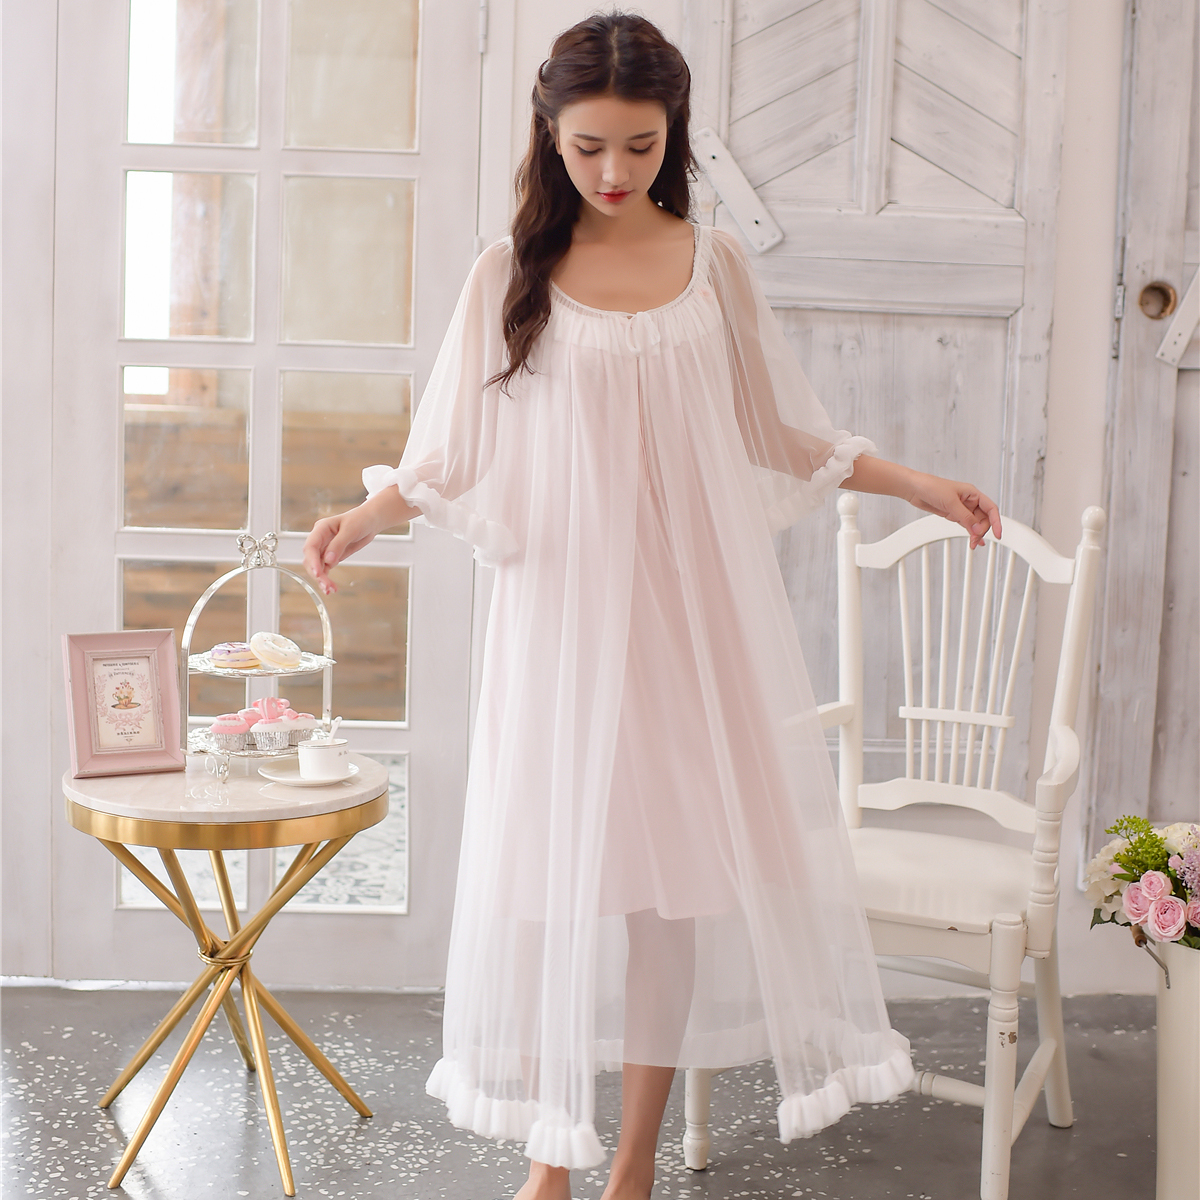 2018 Autumn 2PICS Vintage sleepwear Modal lining nightgown Princess design nightgown long lace nightdress Arab Lady